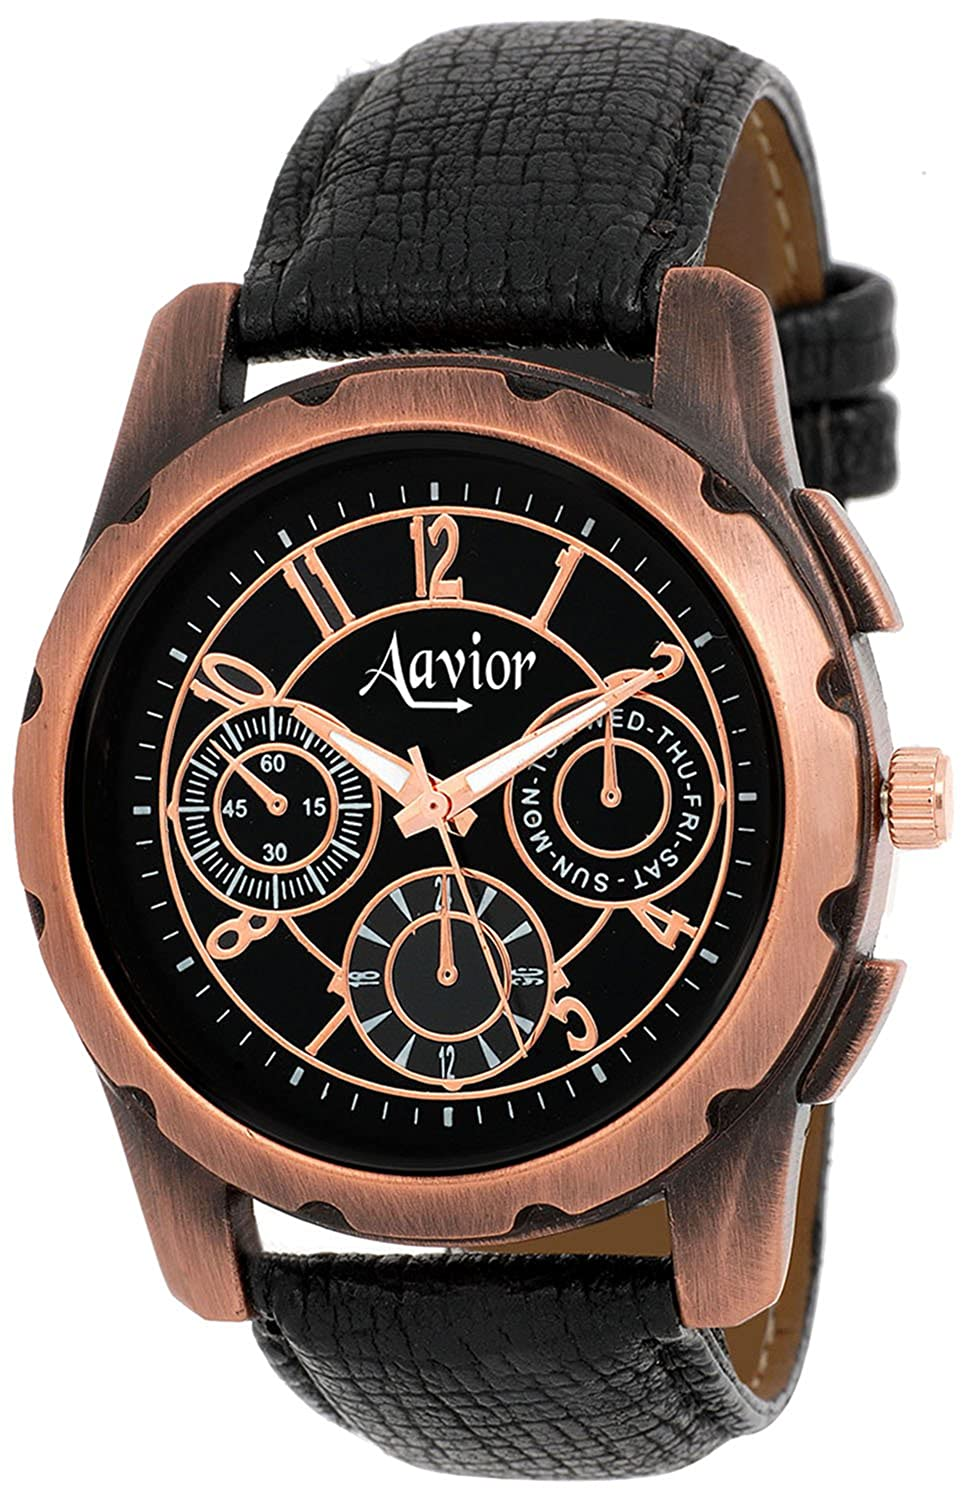 Aavior AA066  Analog Watch For Boys